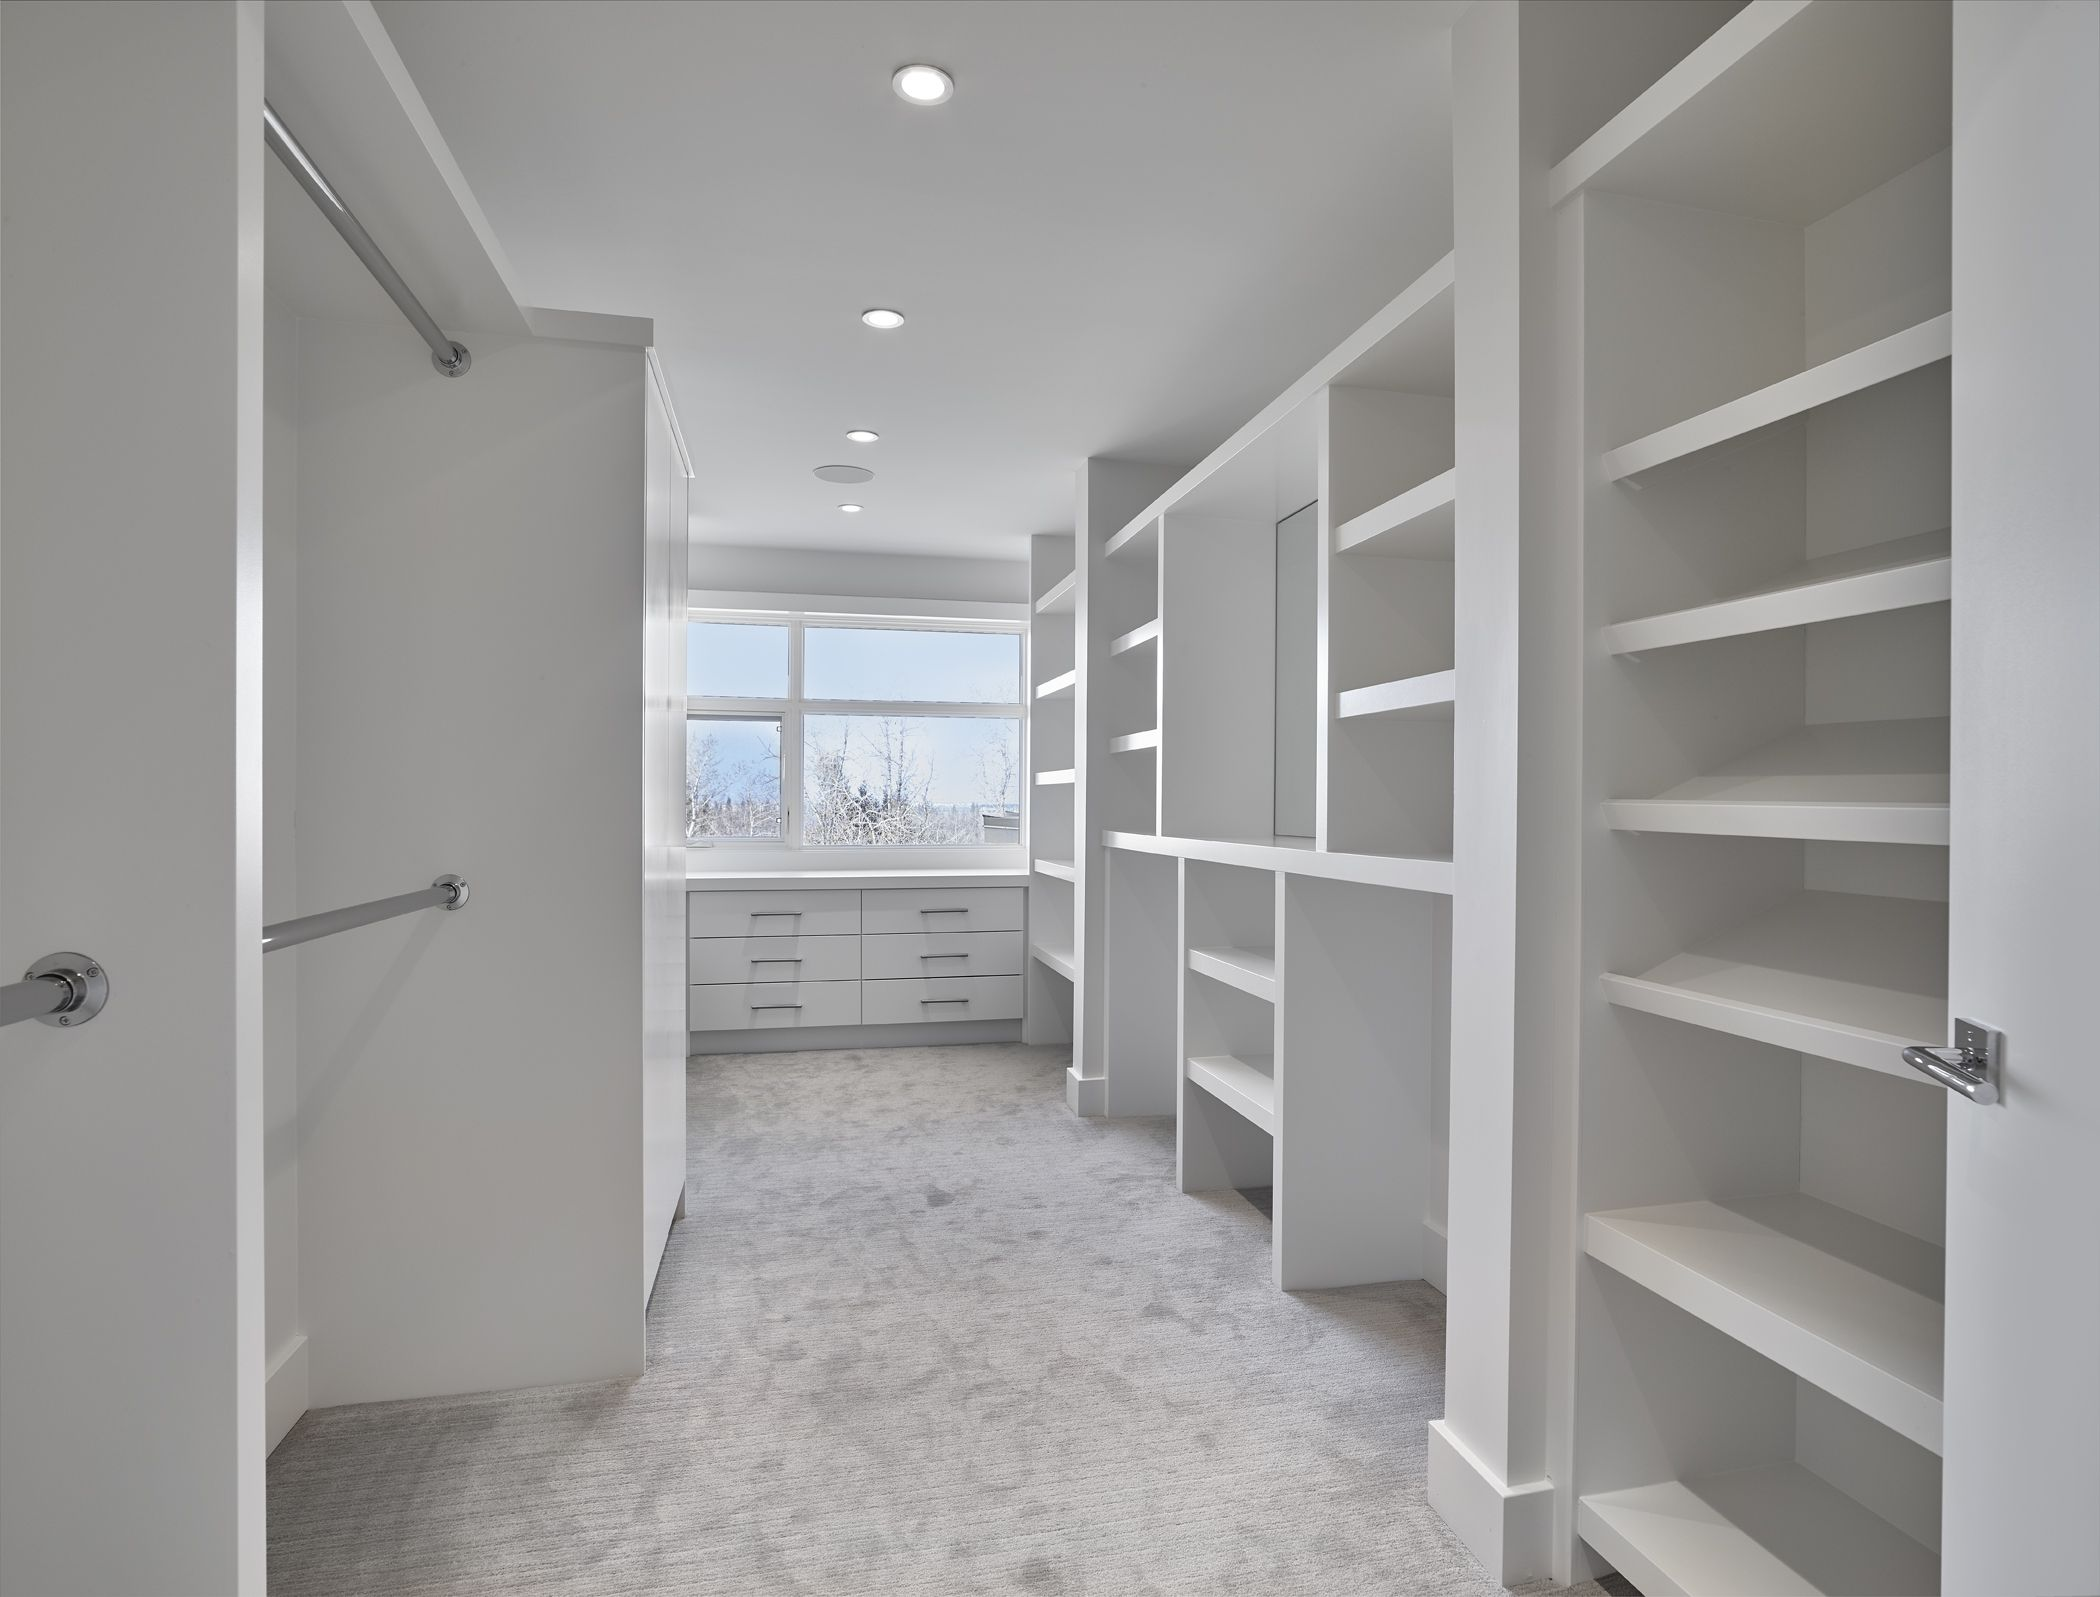 Large Walk In Closet With Window For Natural Light Built By Birkholz Homes Closet Designs Home Walk In Closet Design